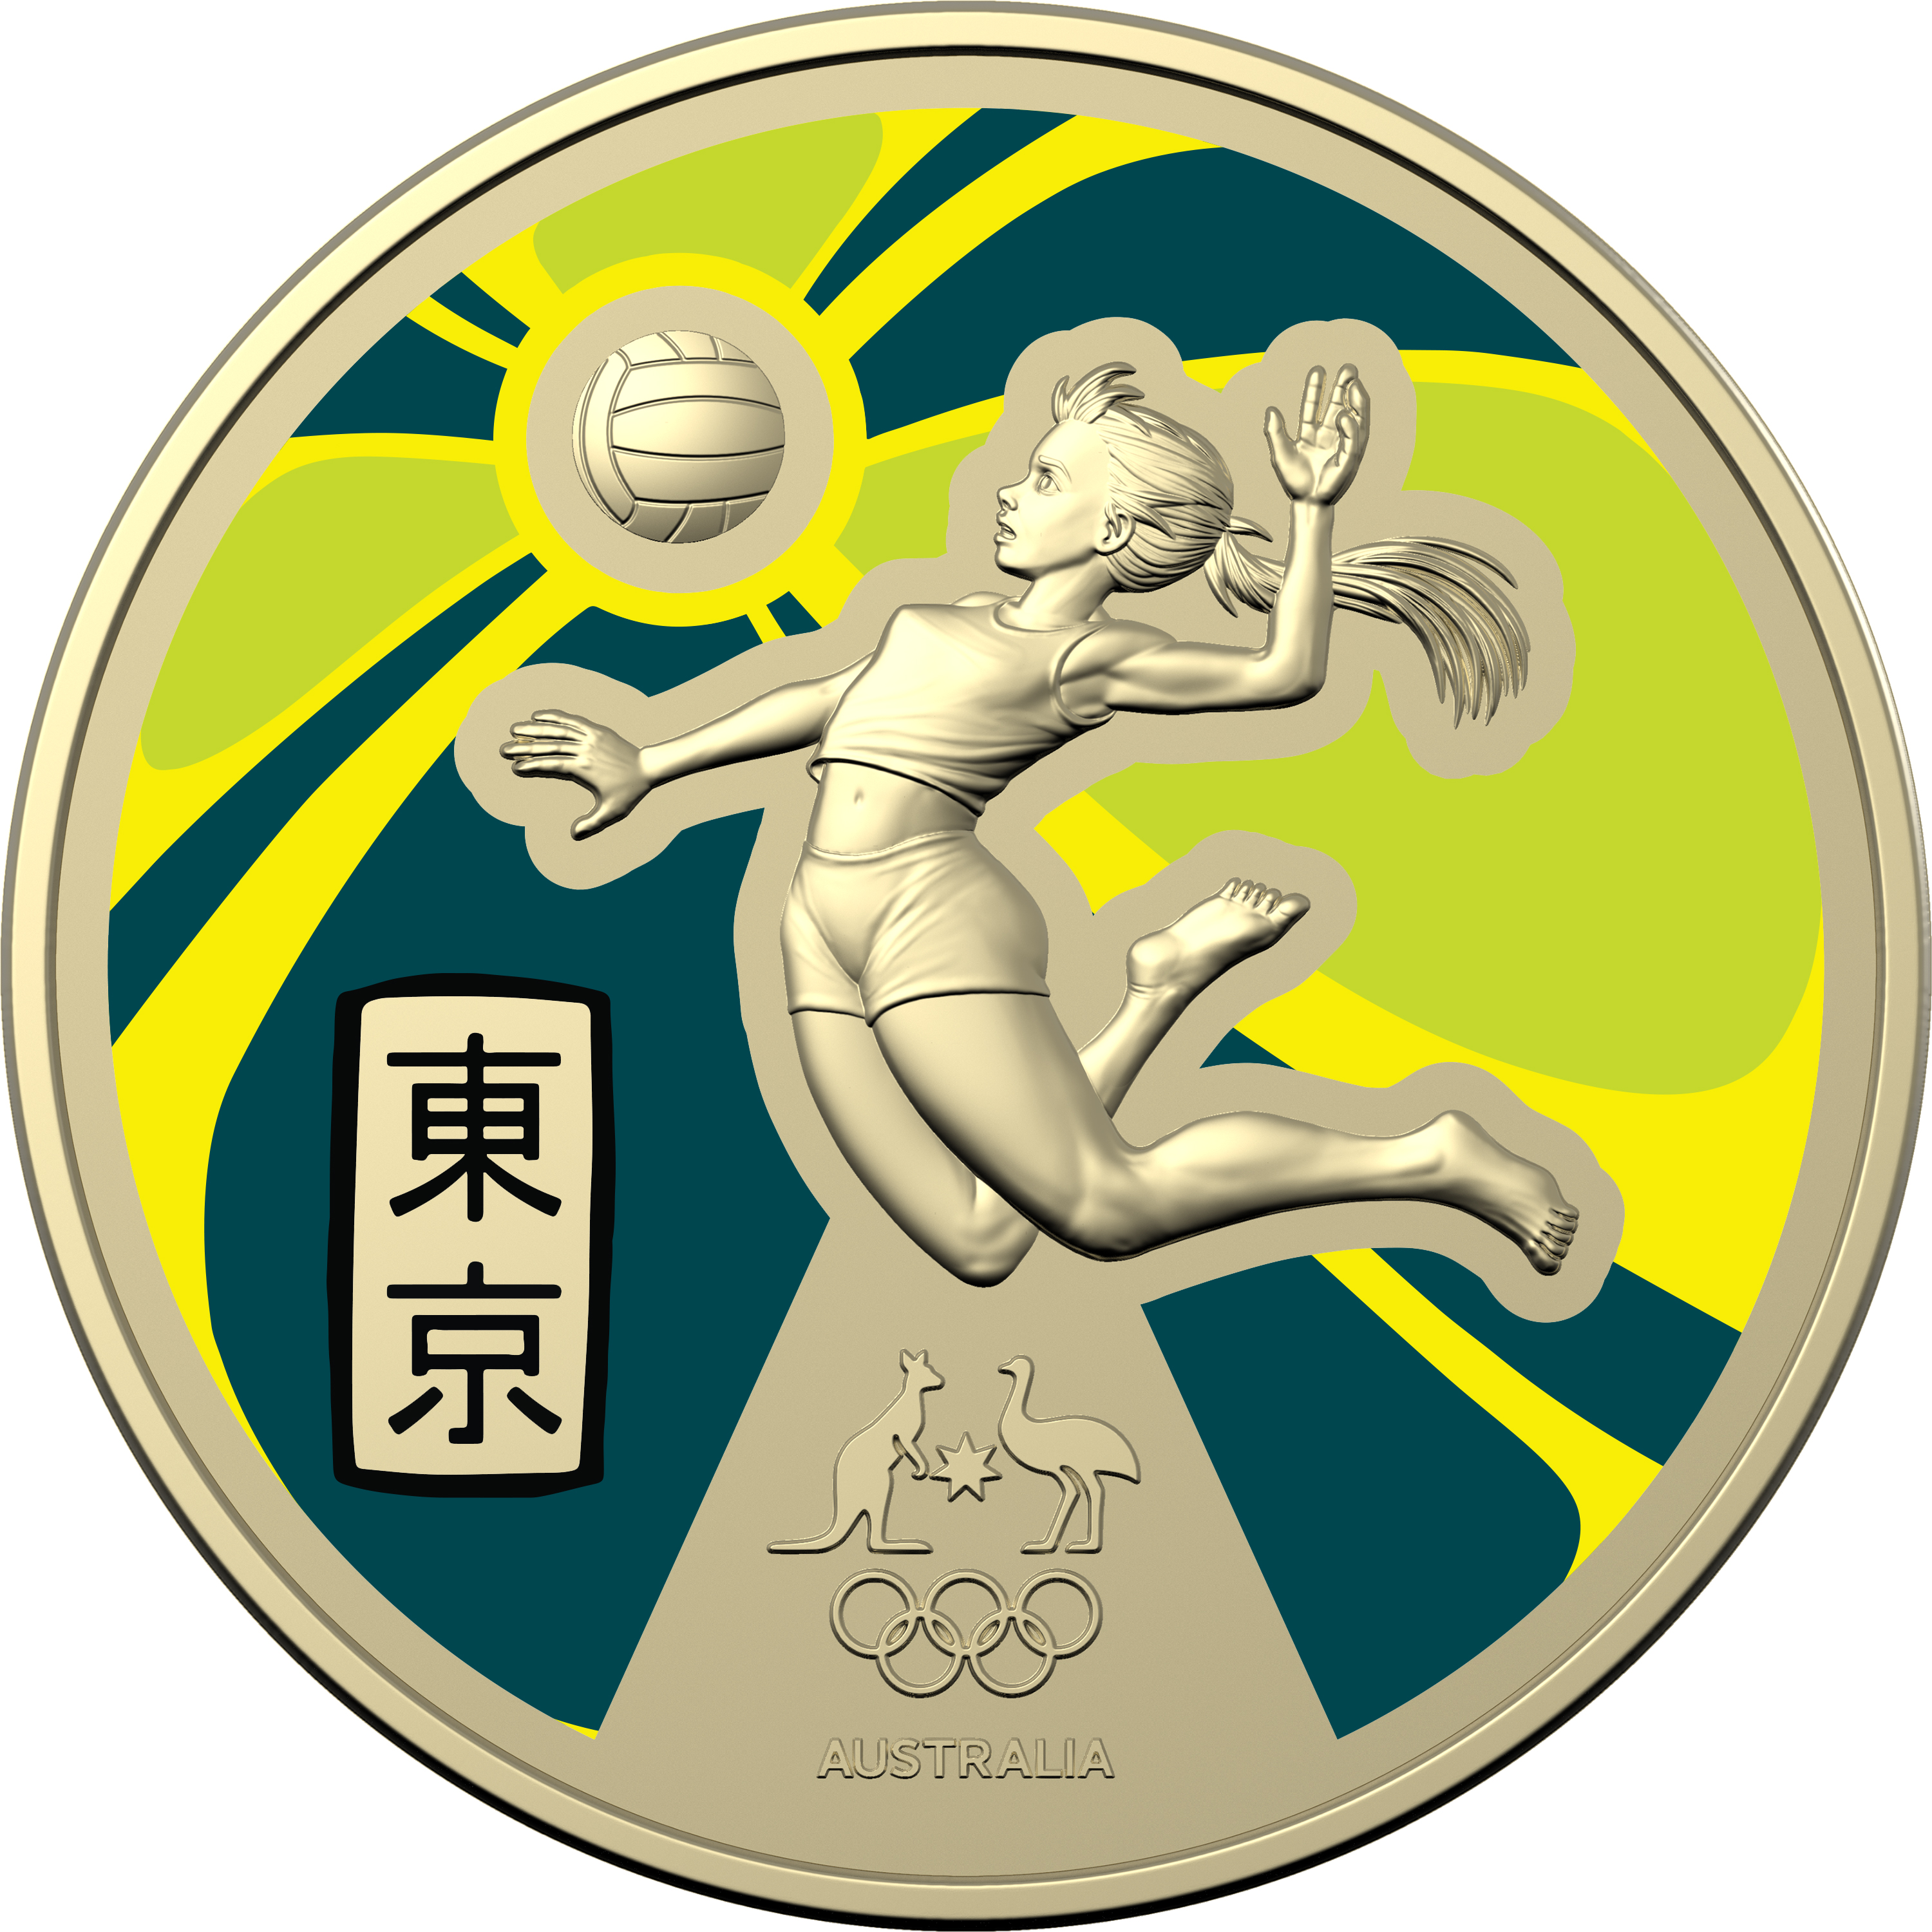 Australia's 2020 coins for 2021 Olympics - All About Coins